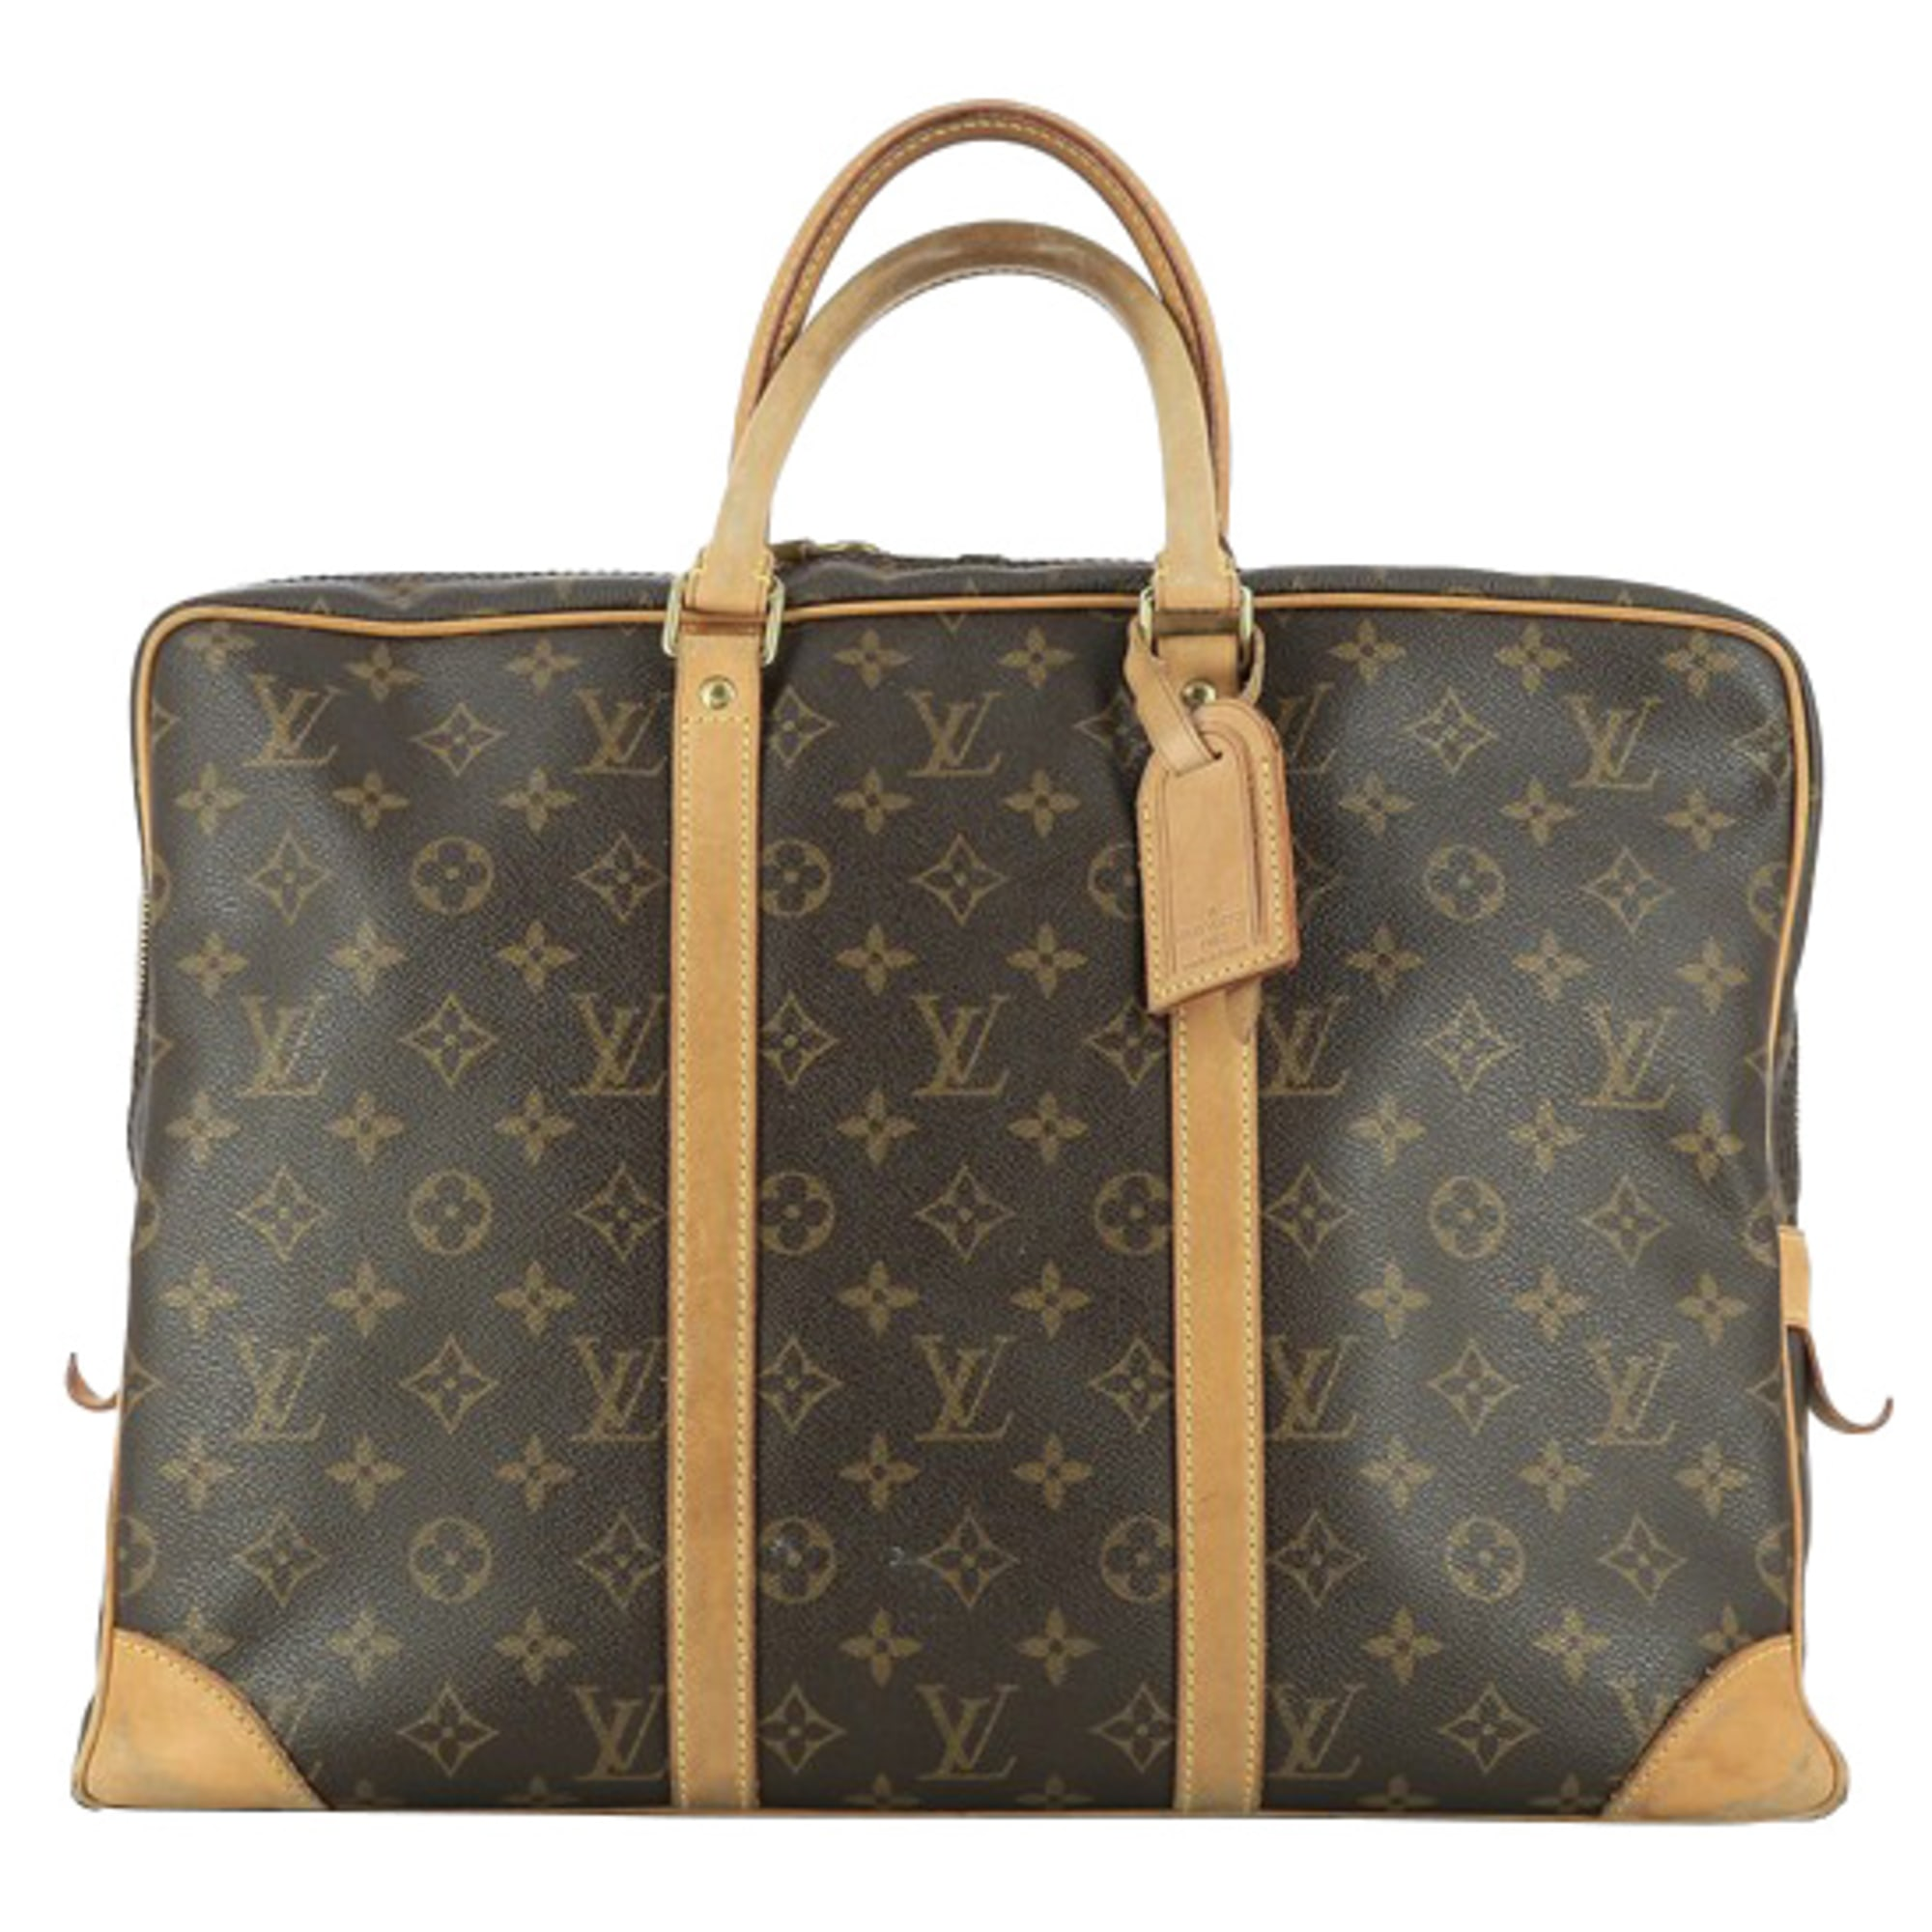 Porte documents, serviette LOUIS VUITTON Marron